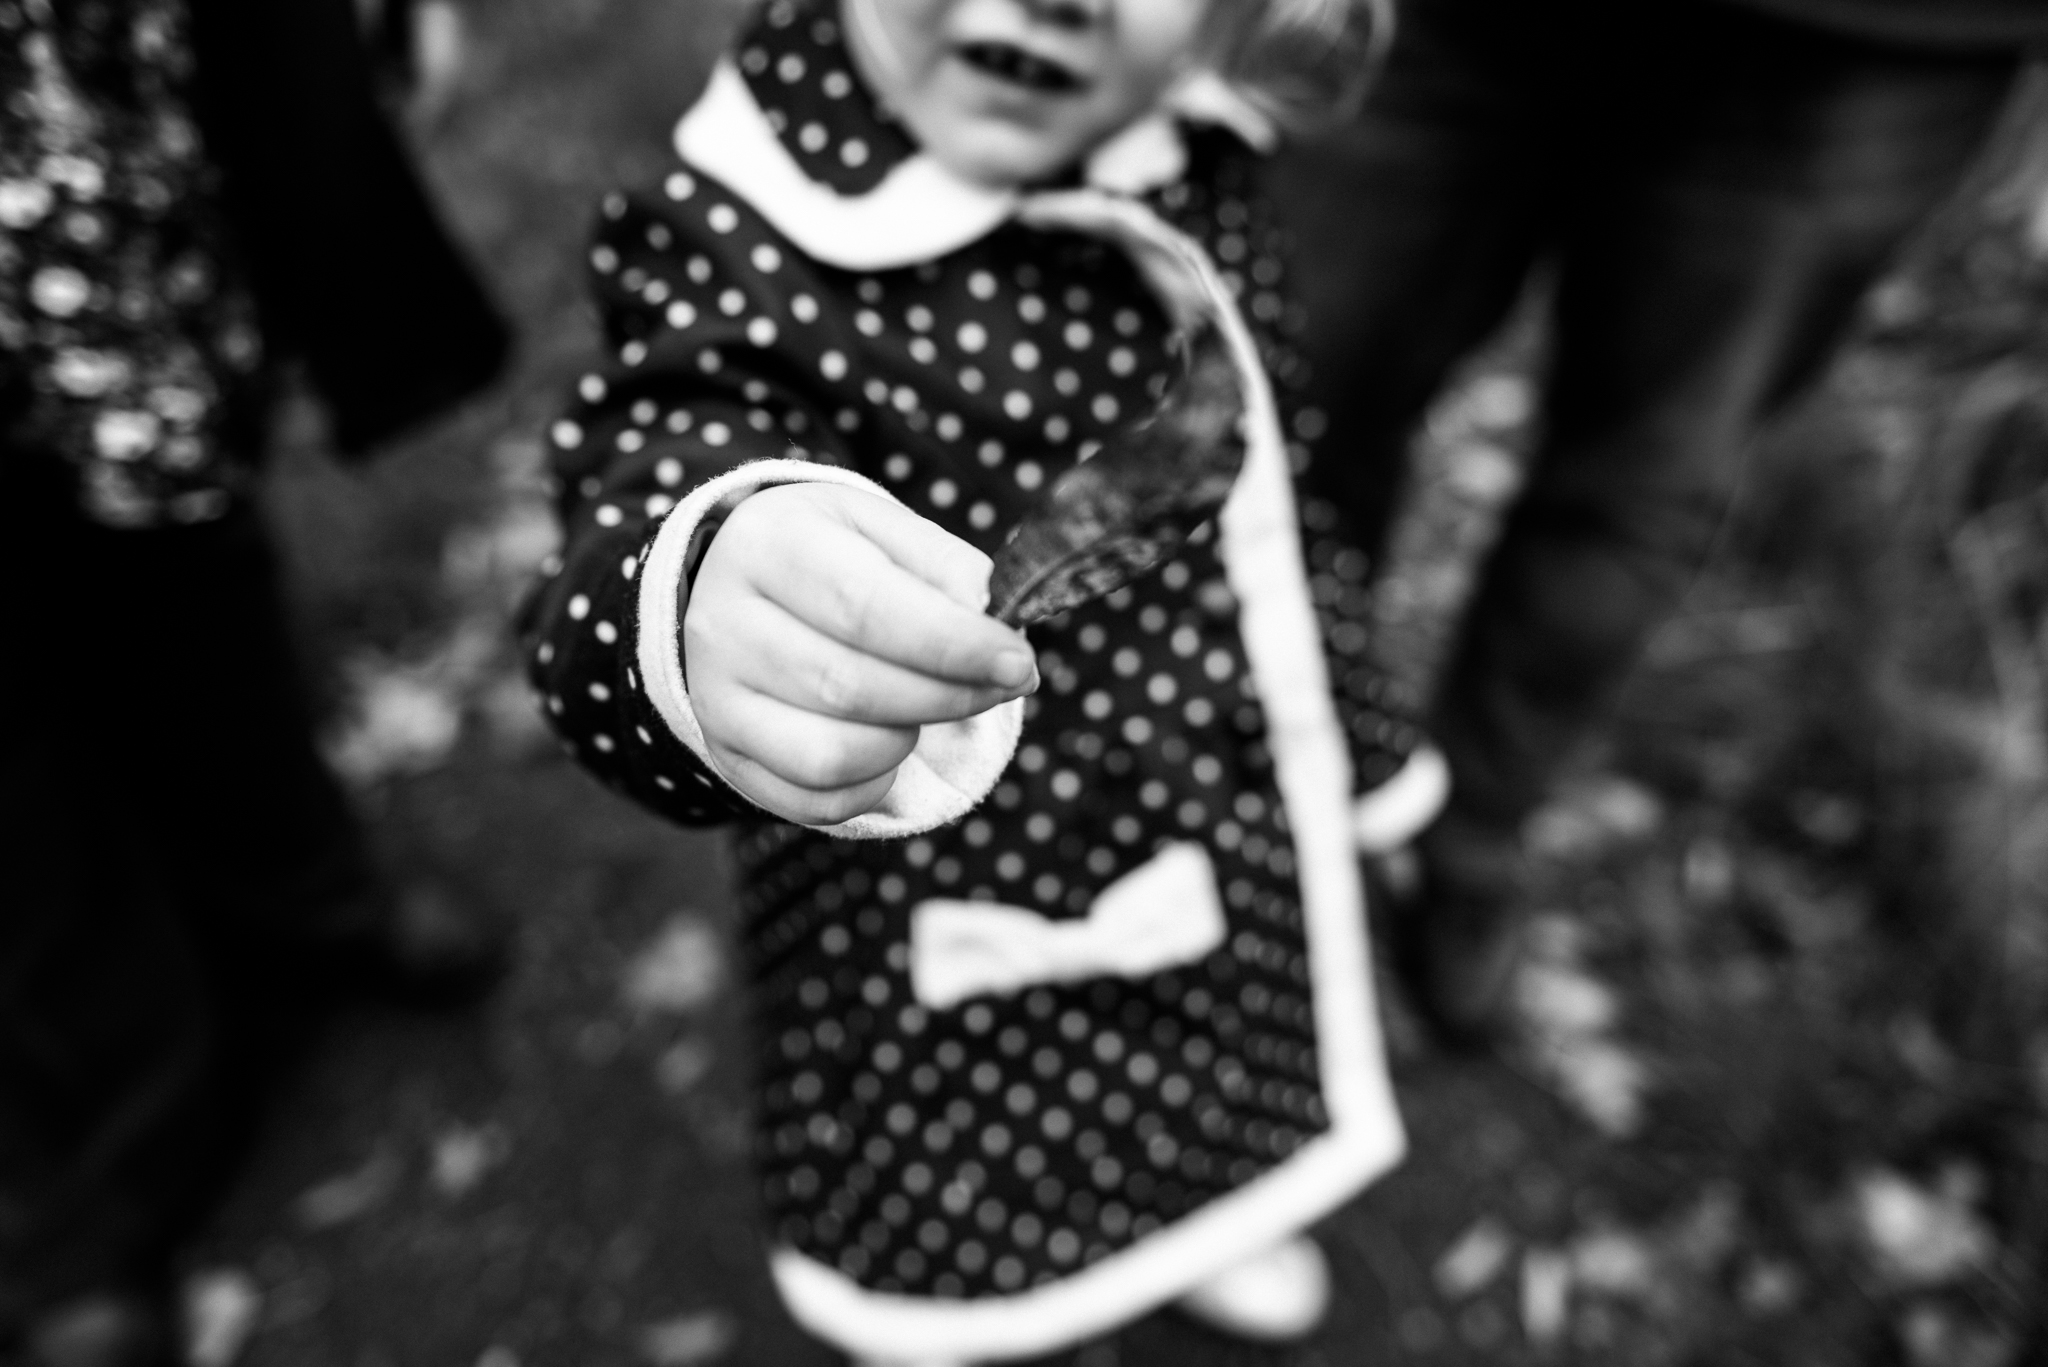 Staffordshire Documentary Family Photography Autumn Lifestyle Fall Leaves - Jenny Harper-8.jpg